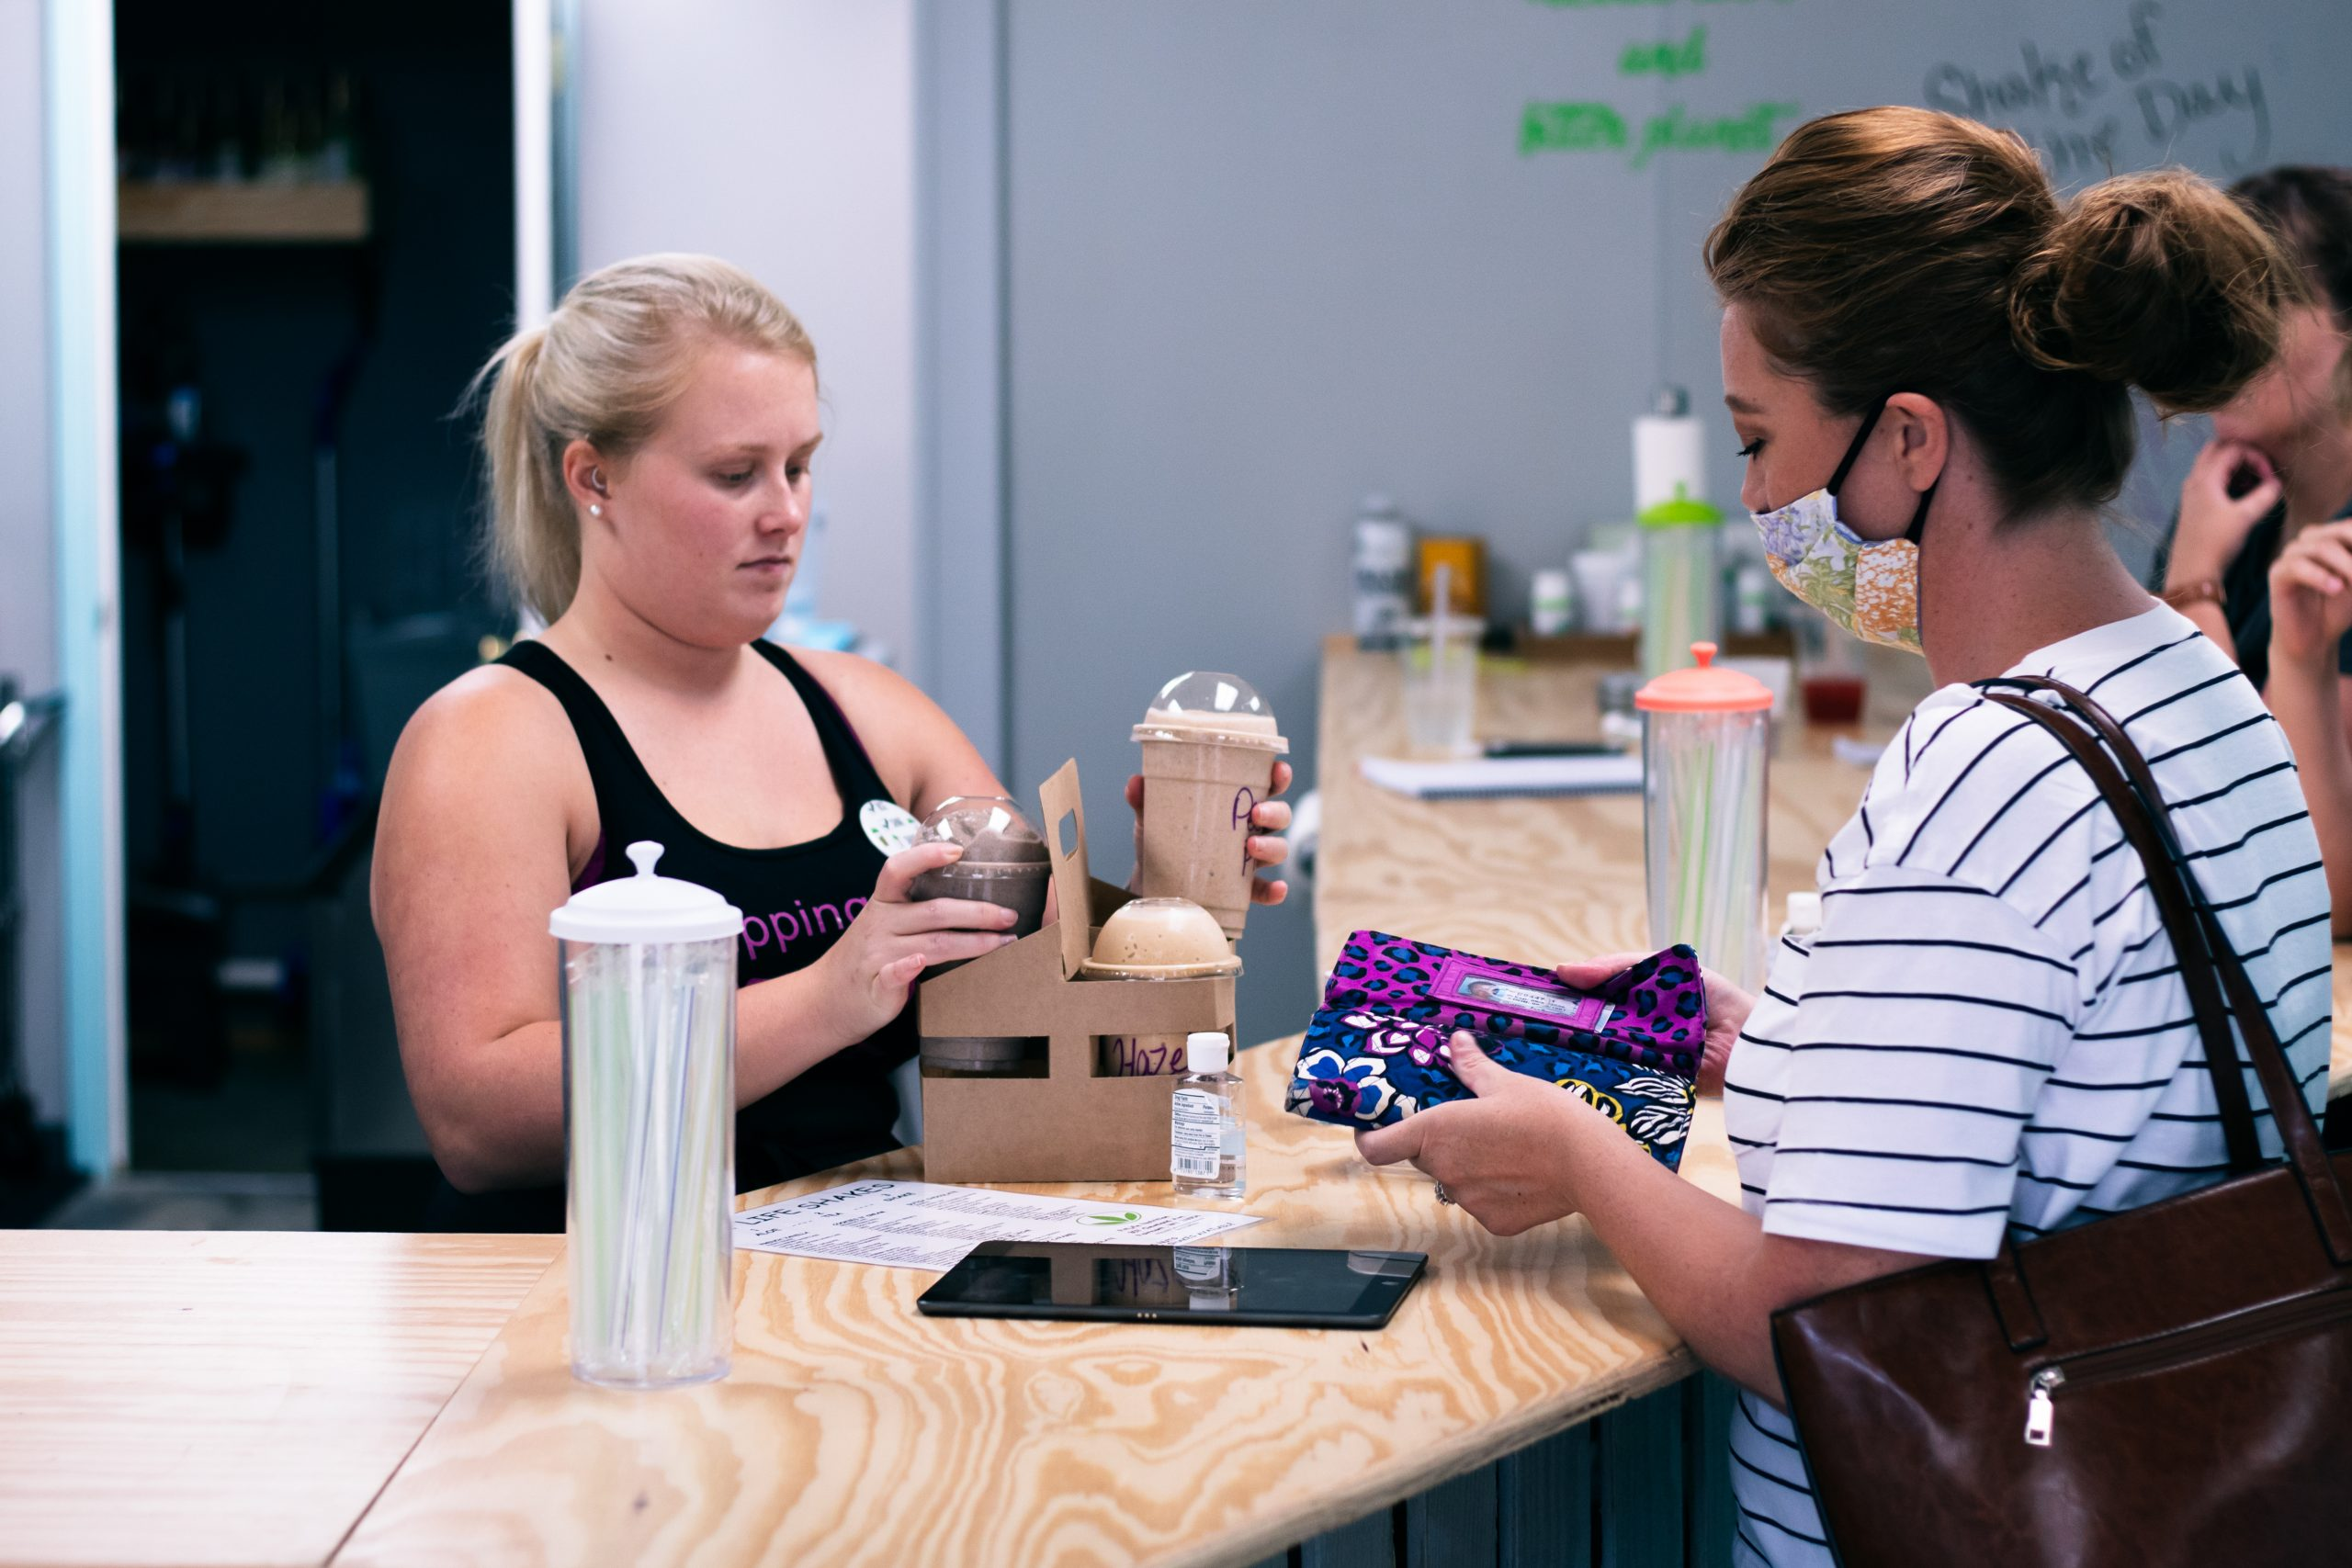 woman handing a patron a drink over a counter